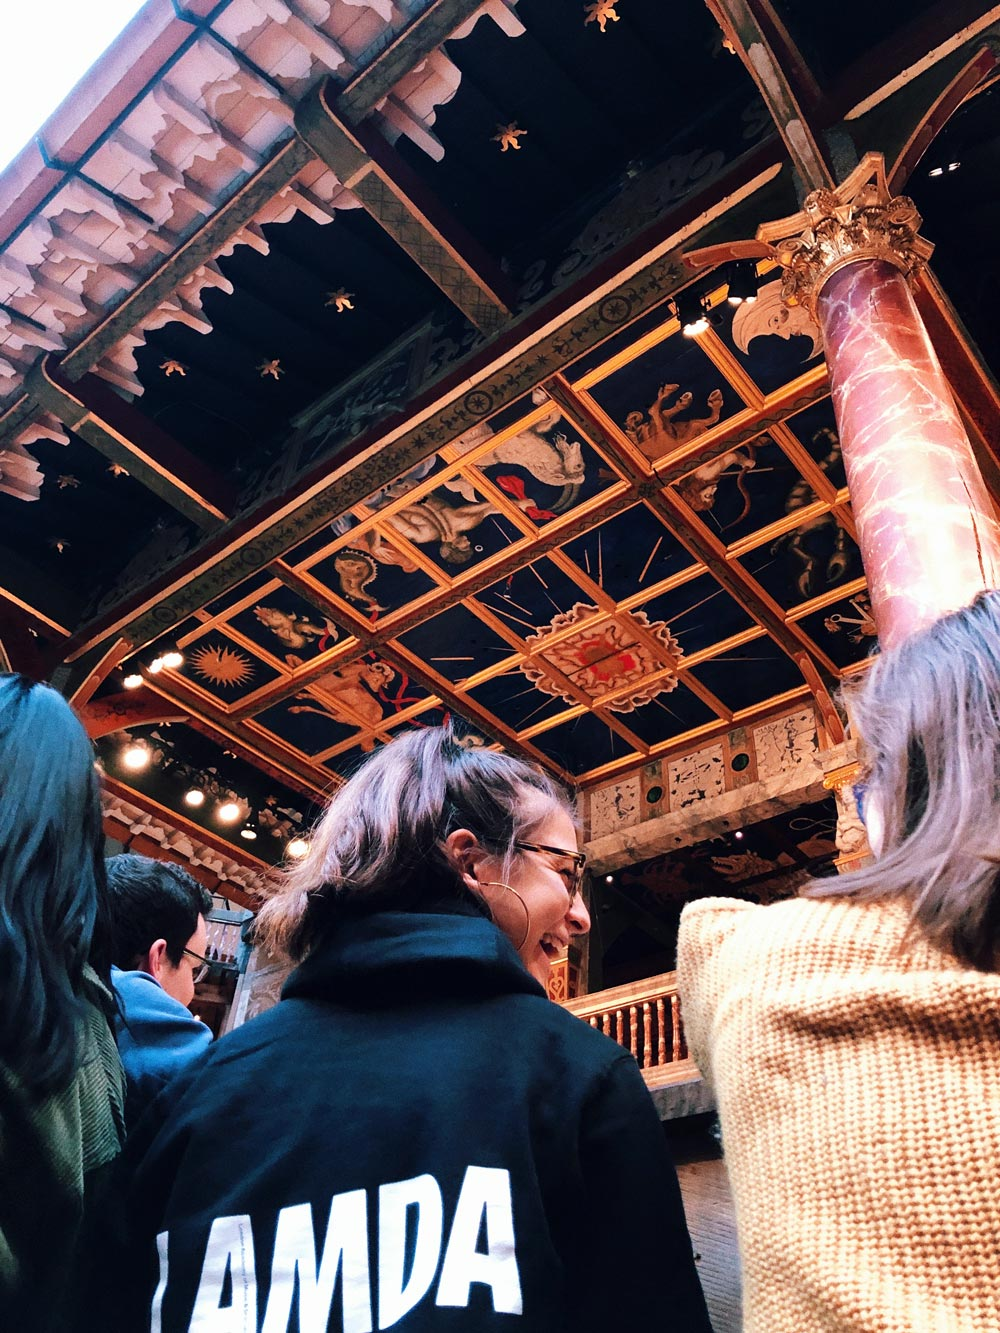 Moledor saw 51 plays while in London, including many at the Globe Theatre, shown here.